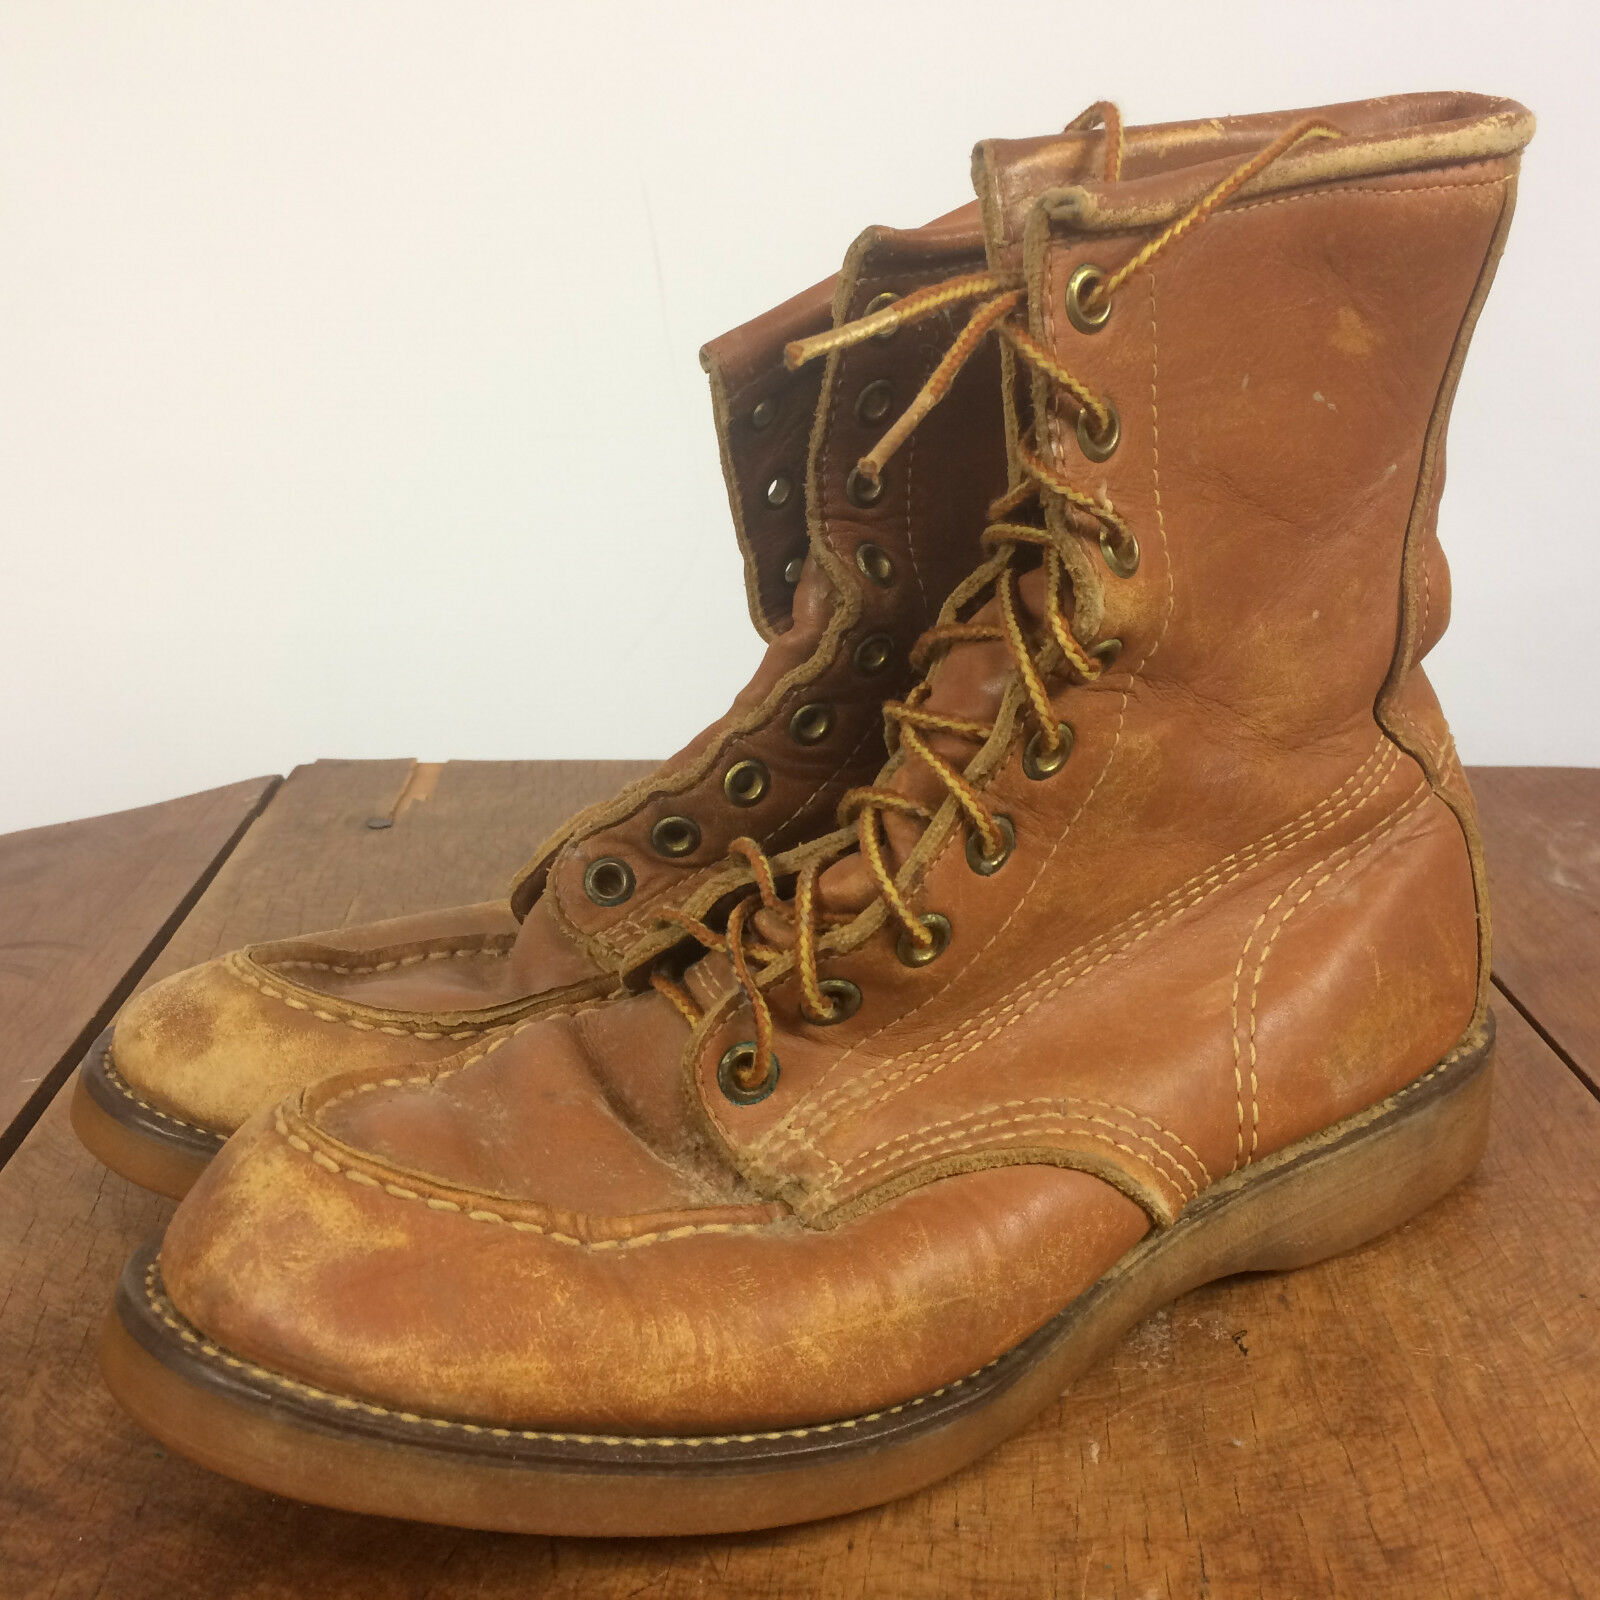 Vintage Neoprene Soles Leather Boots Mens Distressed Work shoes Light Brown